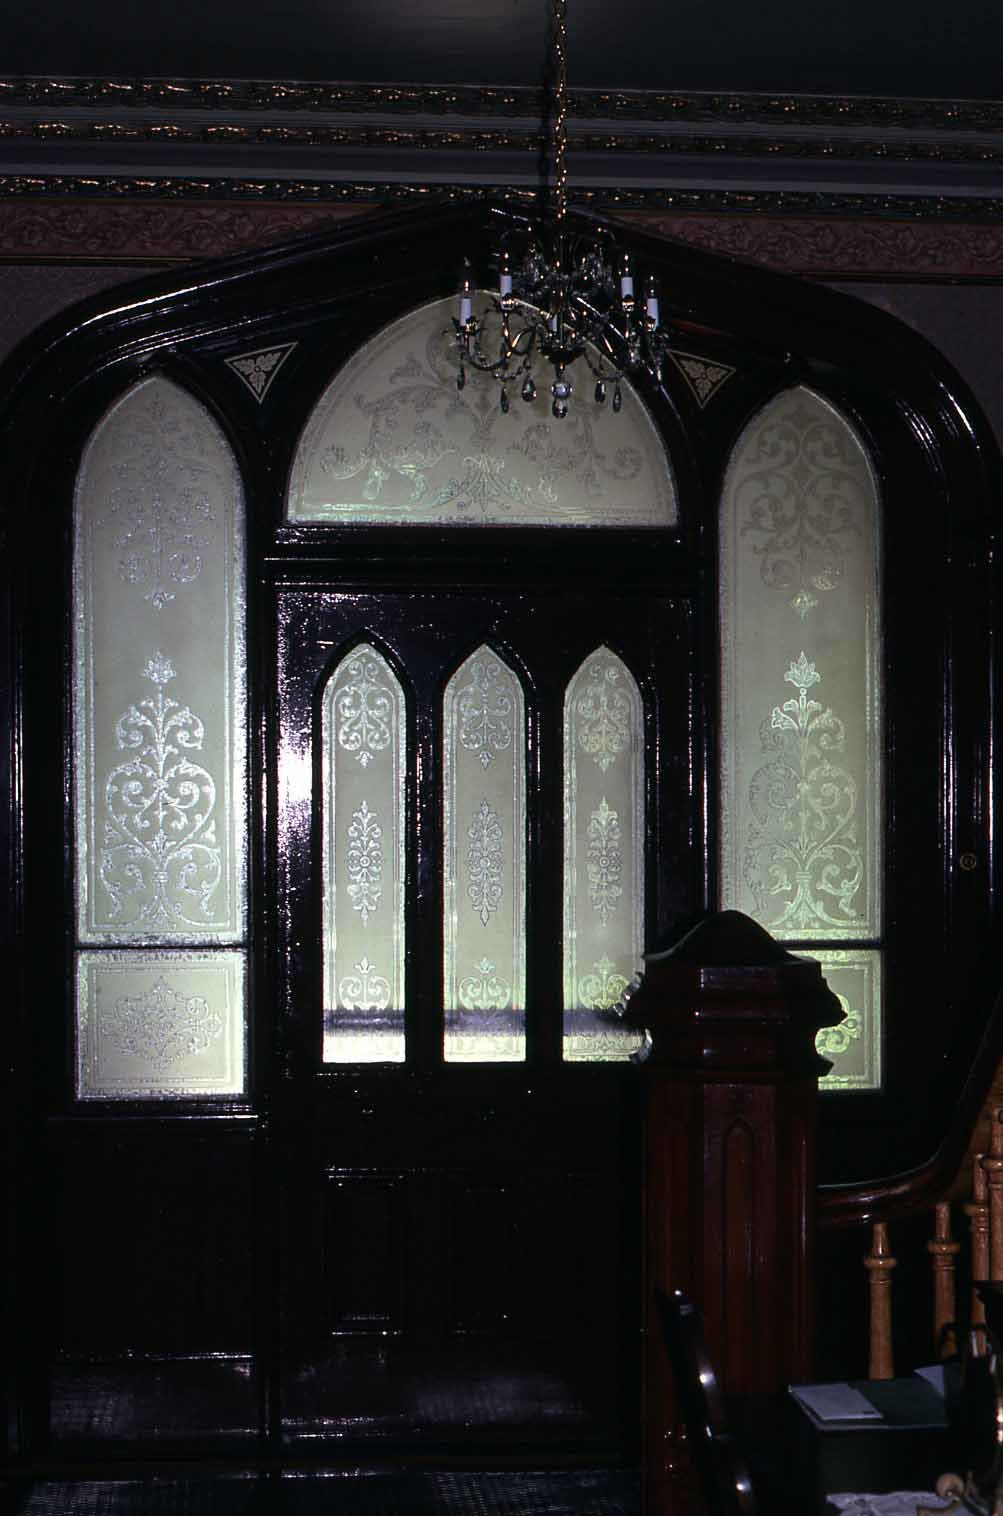 Interior door with transom and sidelights, St. Mary's Church Rectory, Lindsay